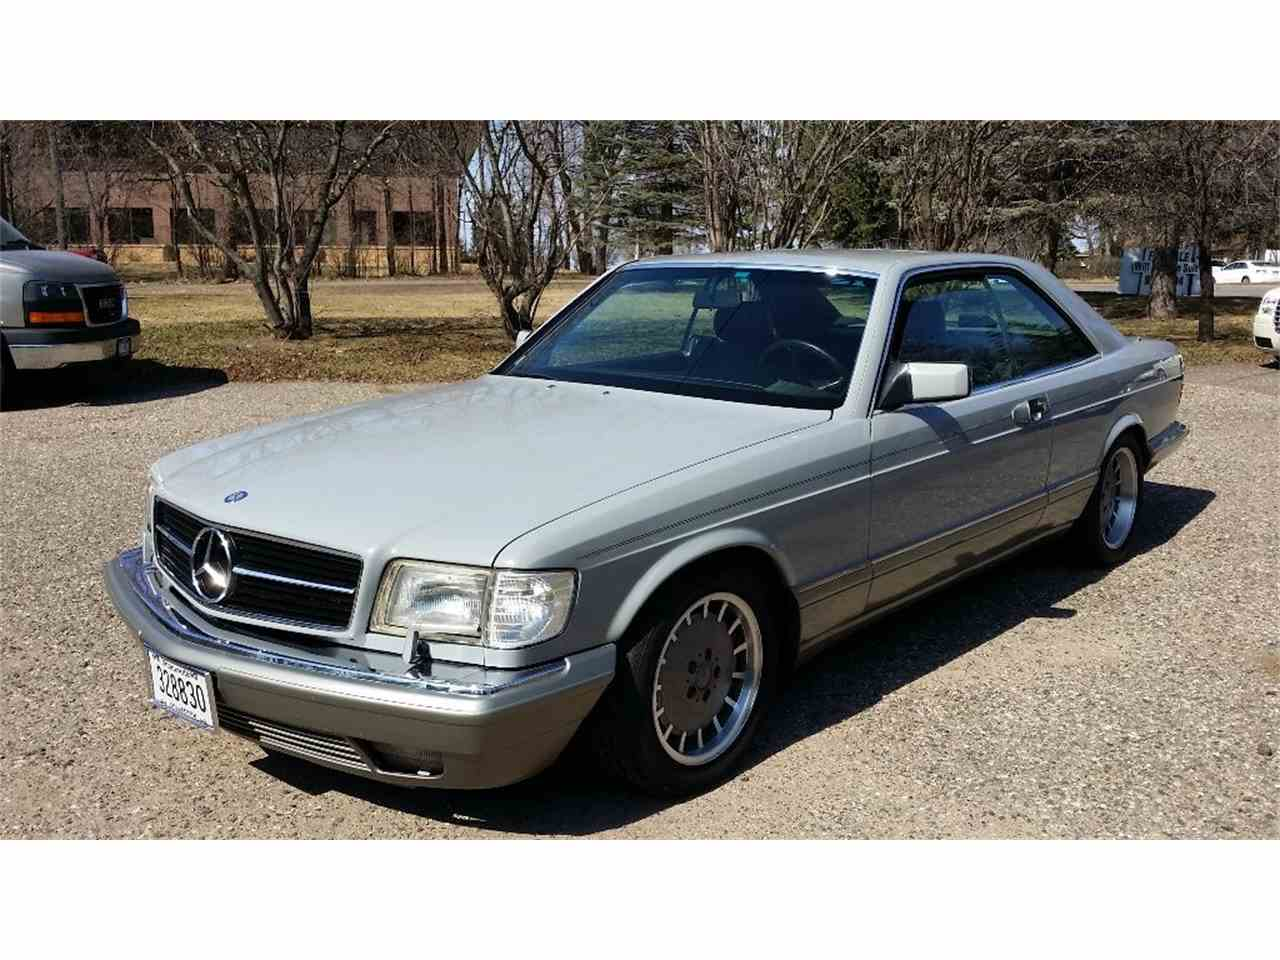 Large Picture of '87 Mercedes-Benz 560SEC located in Minnesota - $13,000.00 Offered by Classic Rides and Rods - EGAK